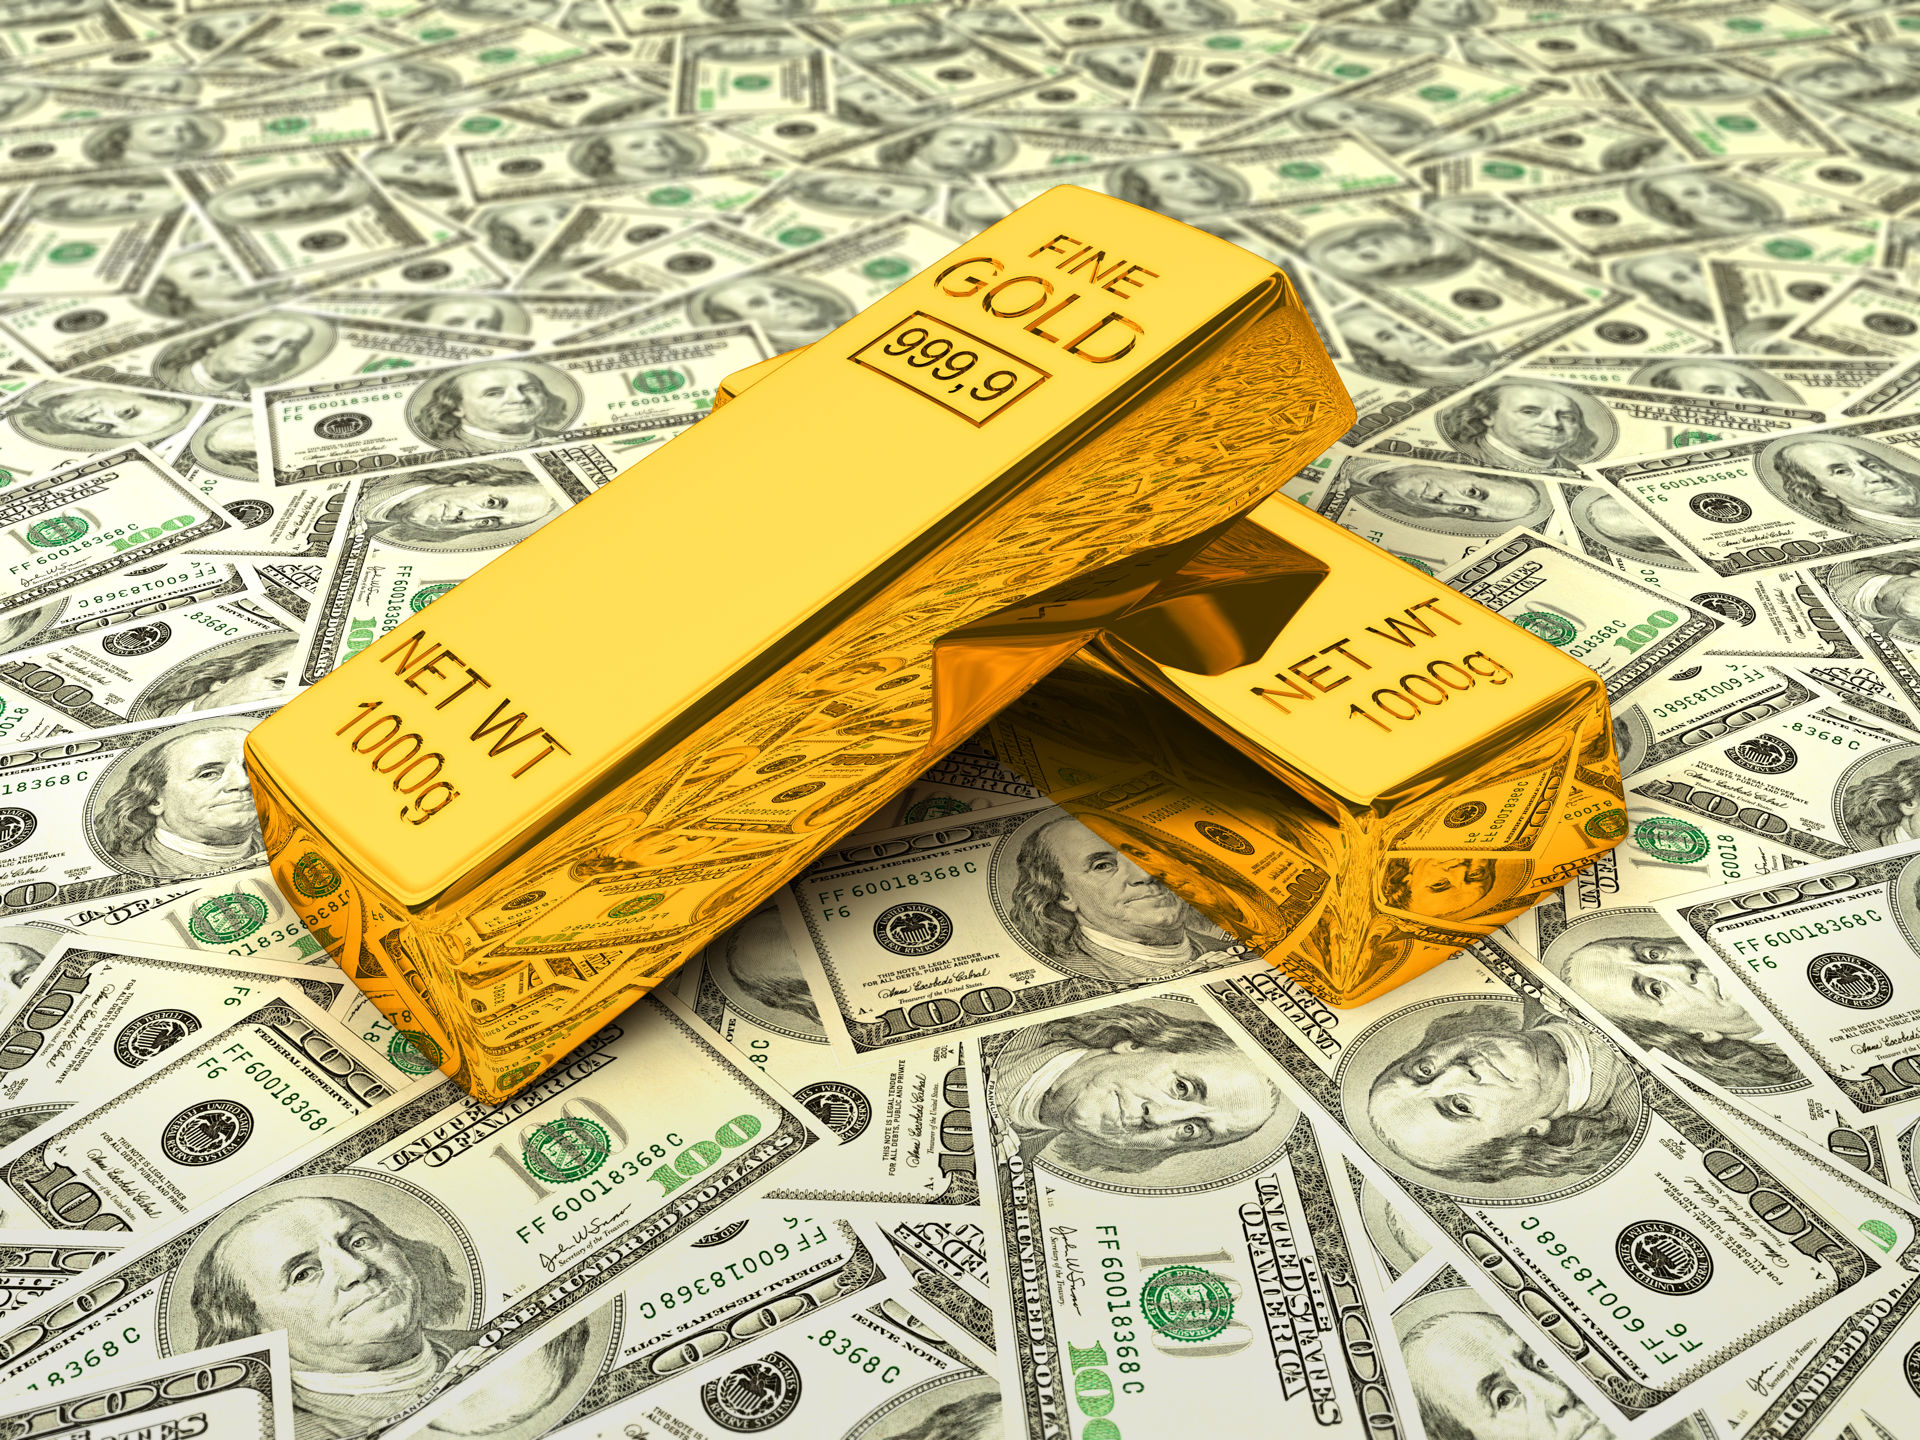 How Much Is a Bar of Gold Worth?